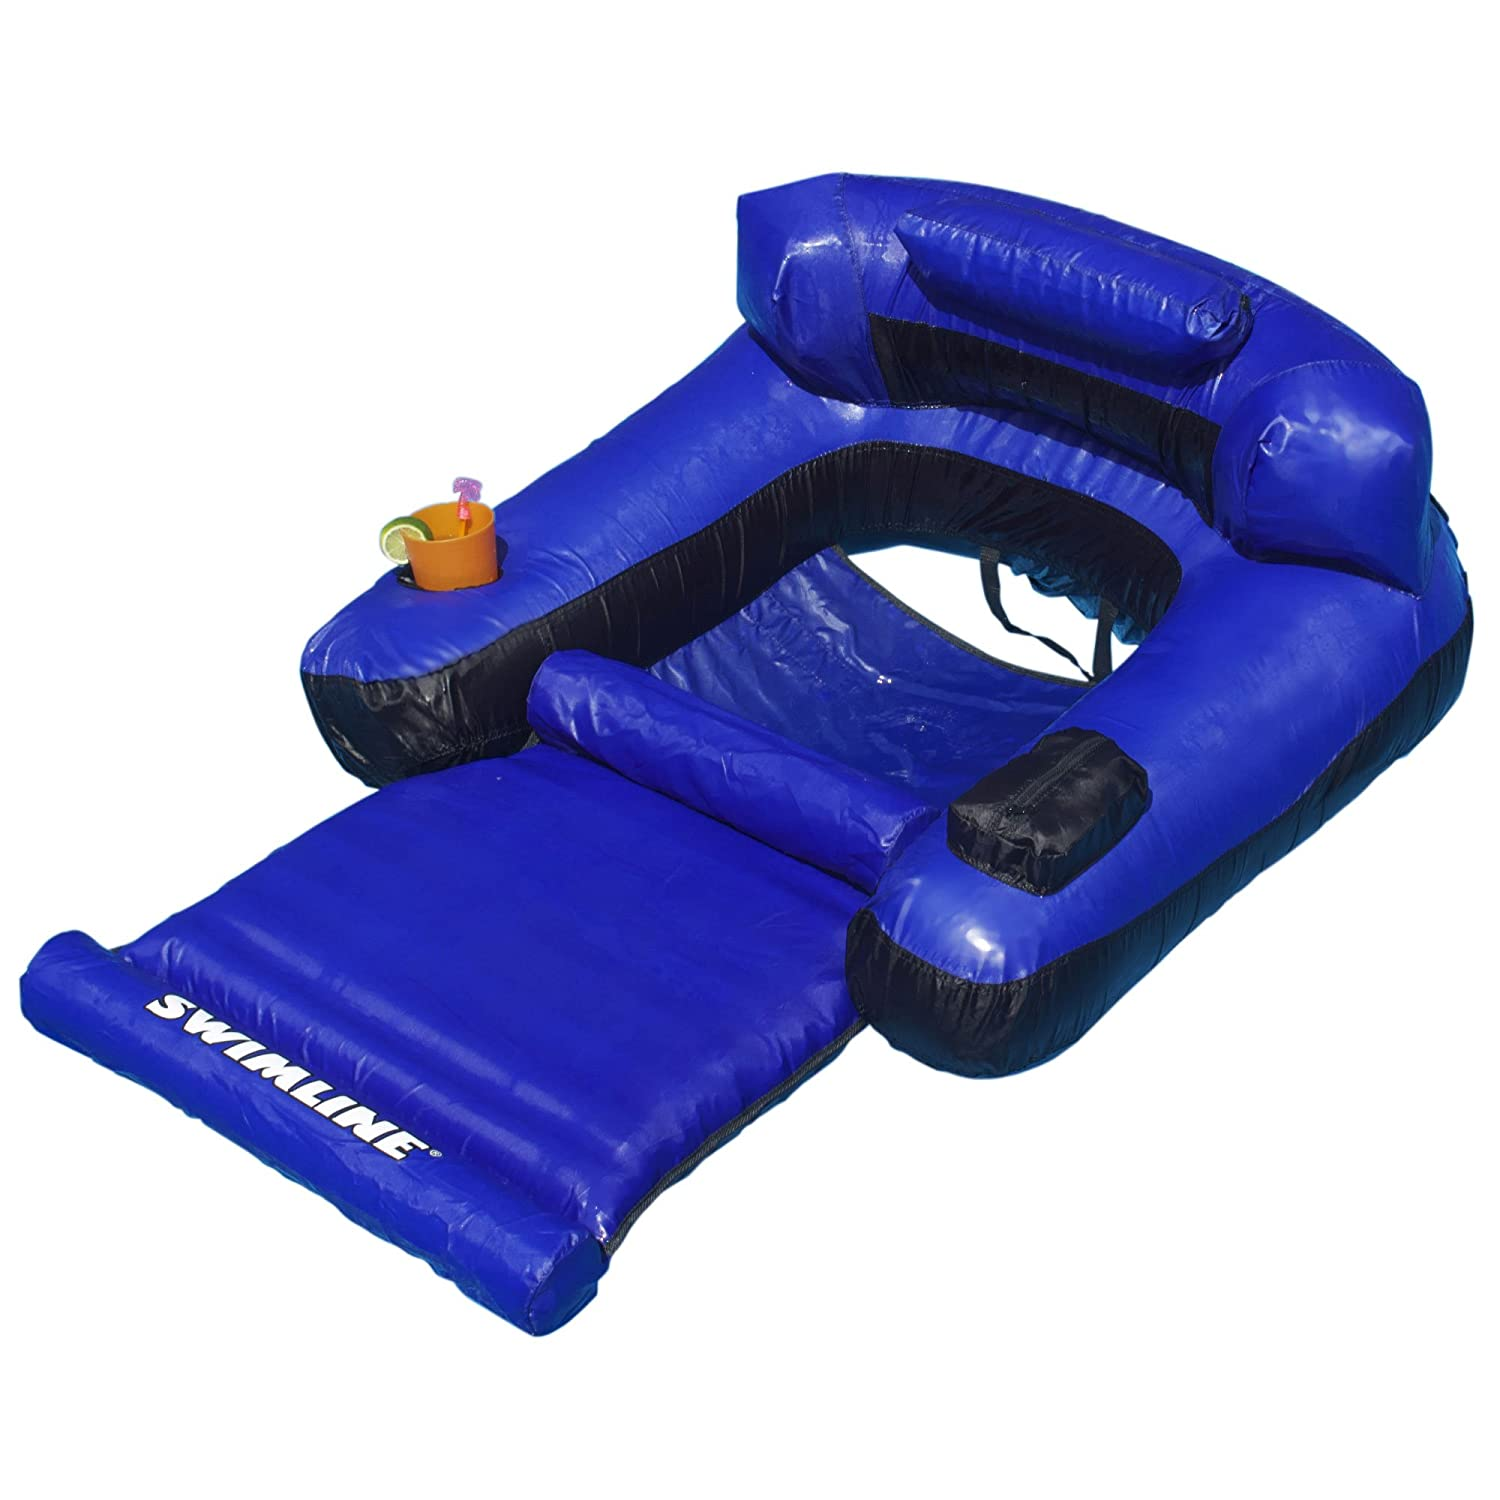 Amazon Swimline Floating Lounge Chair Toys & Games